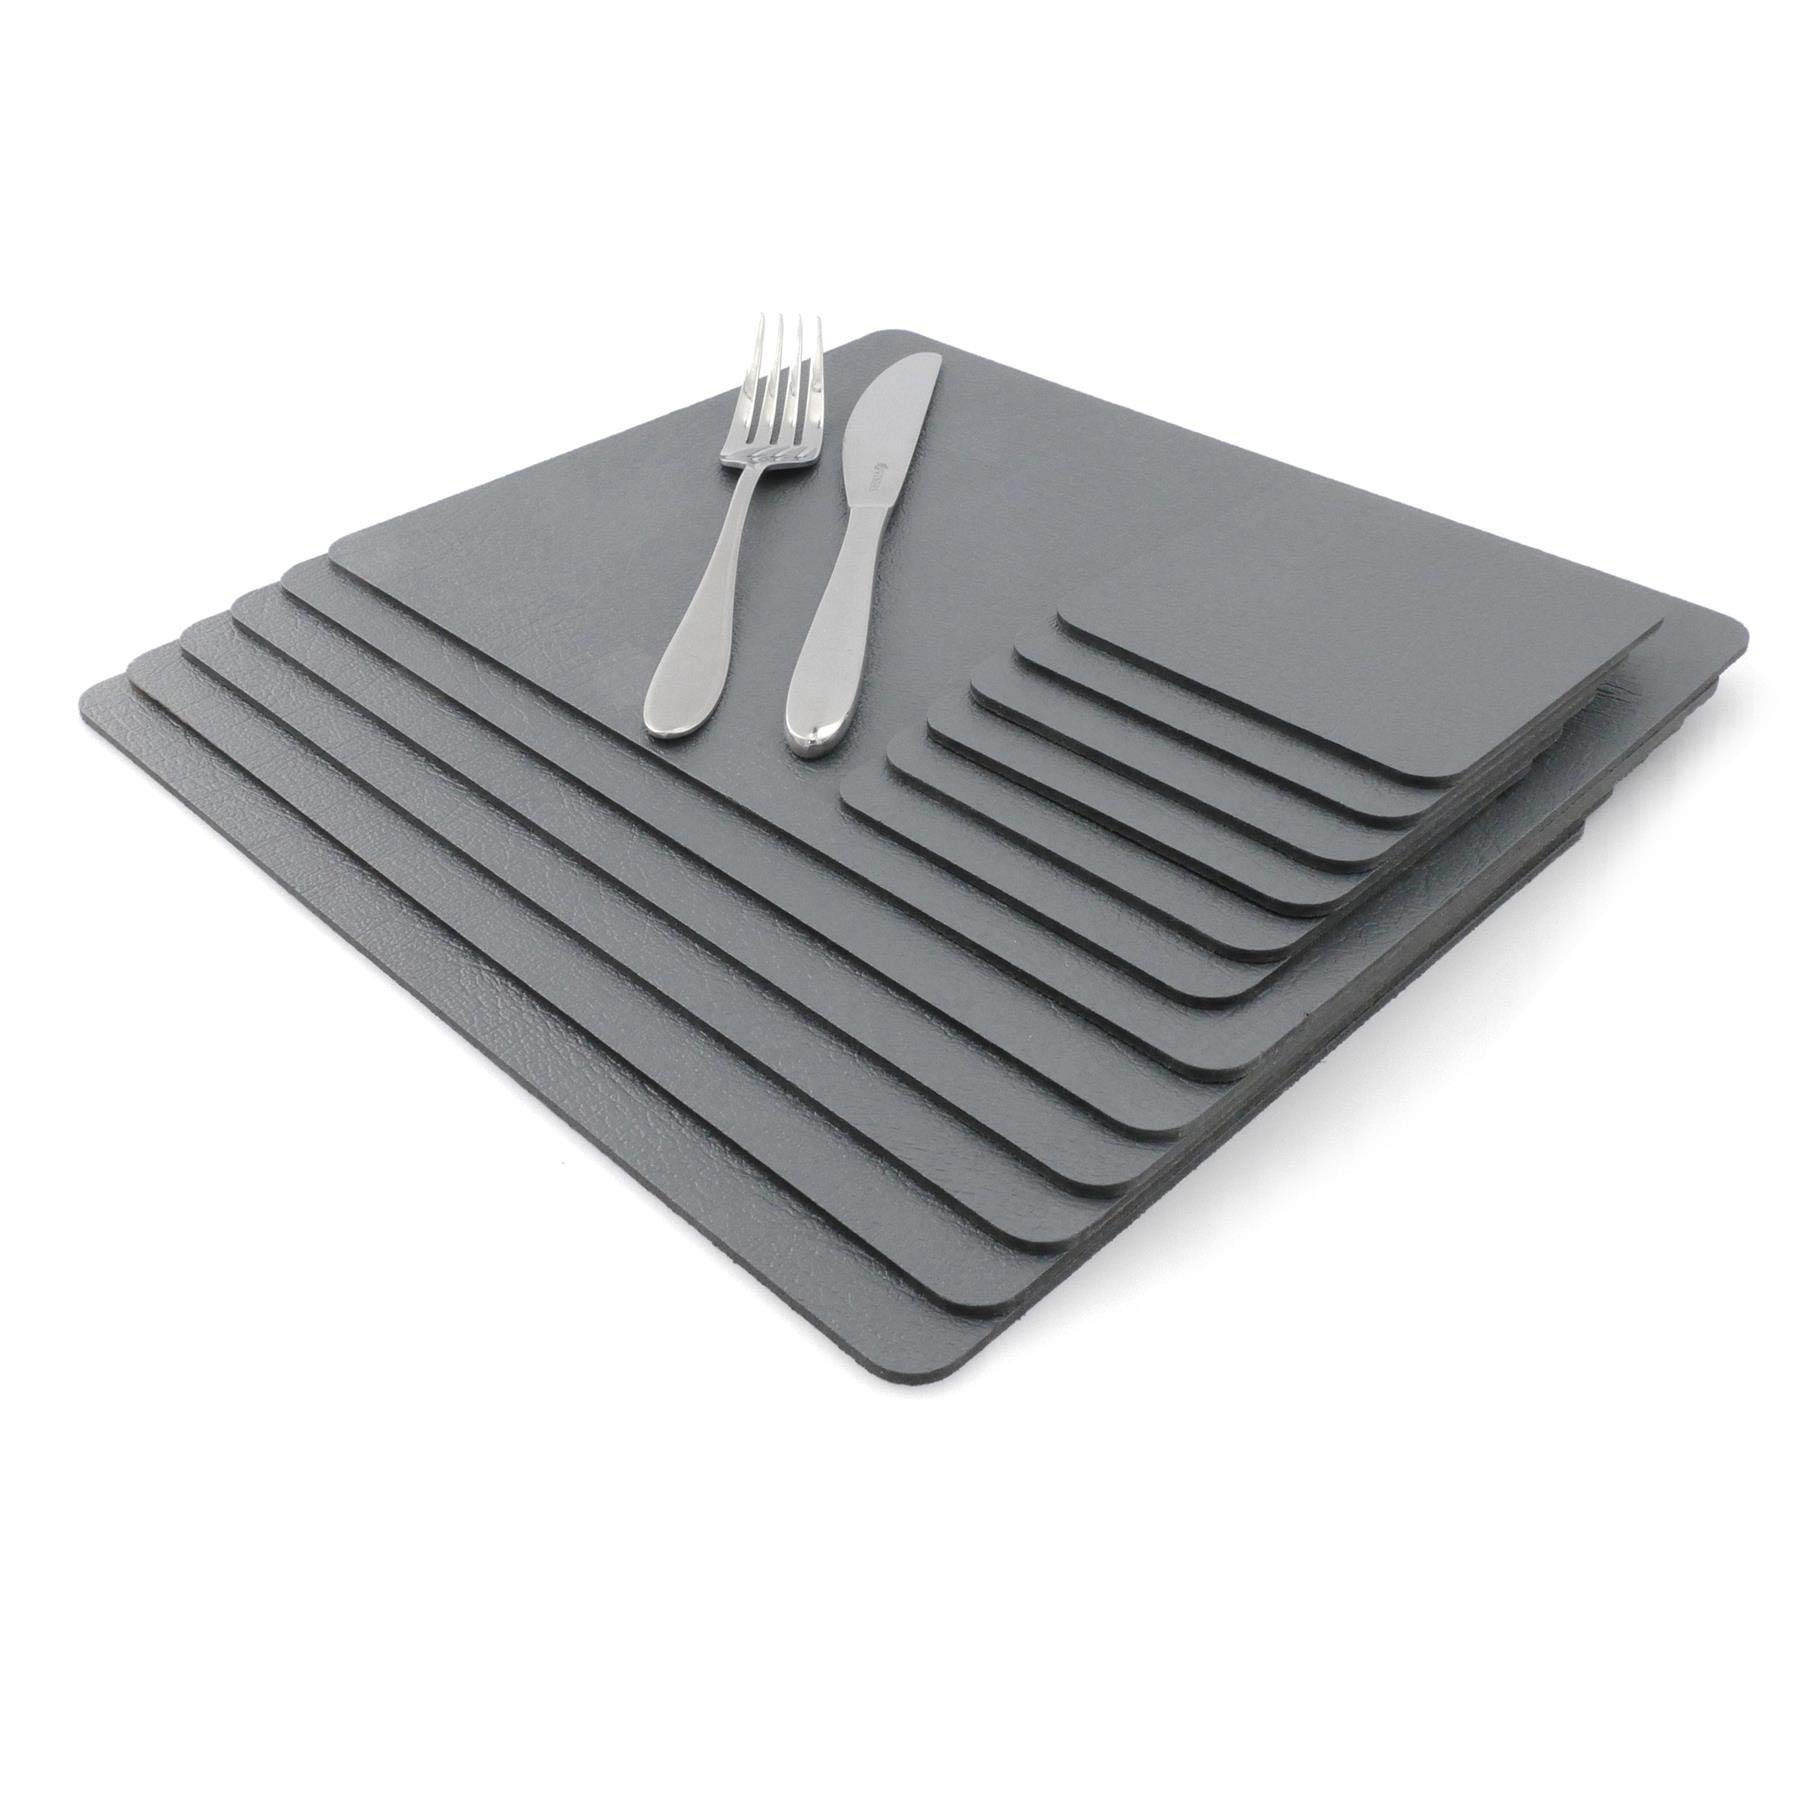 Sets of 6 Slate Grey Recycled Leather Placemats 28cm x 21cm and 6 Leather Made